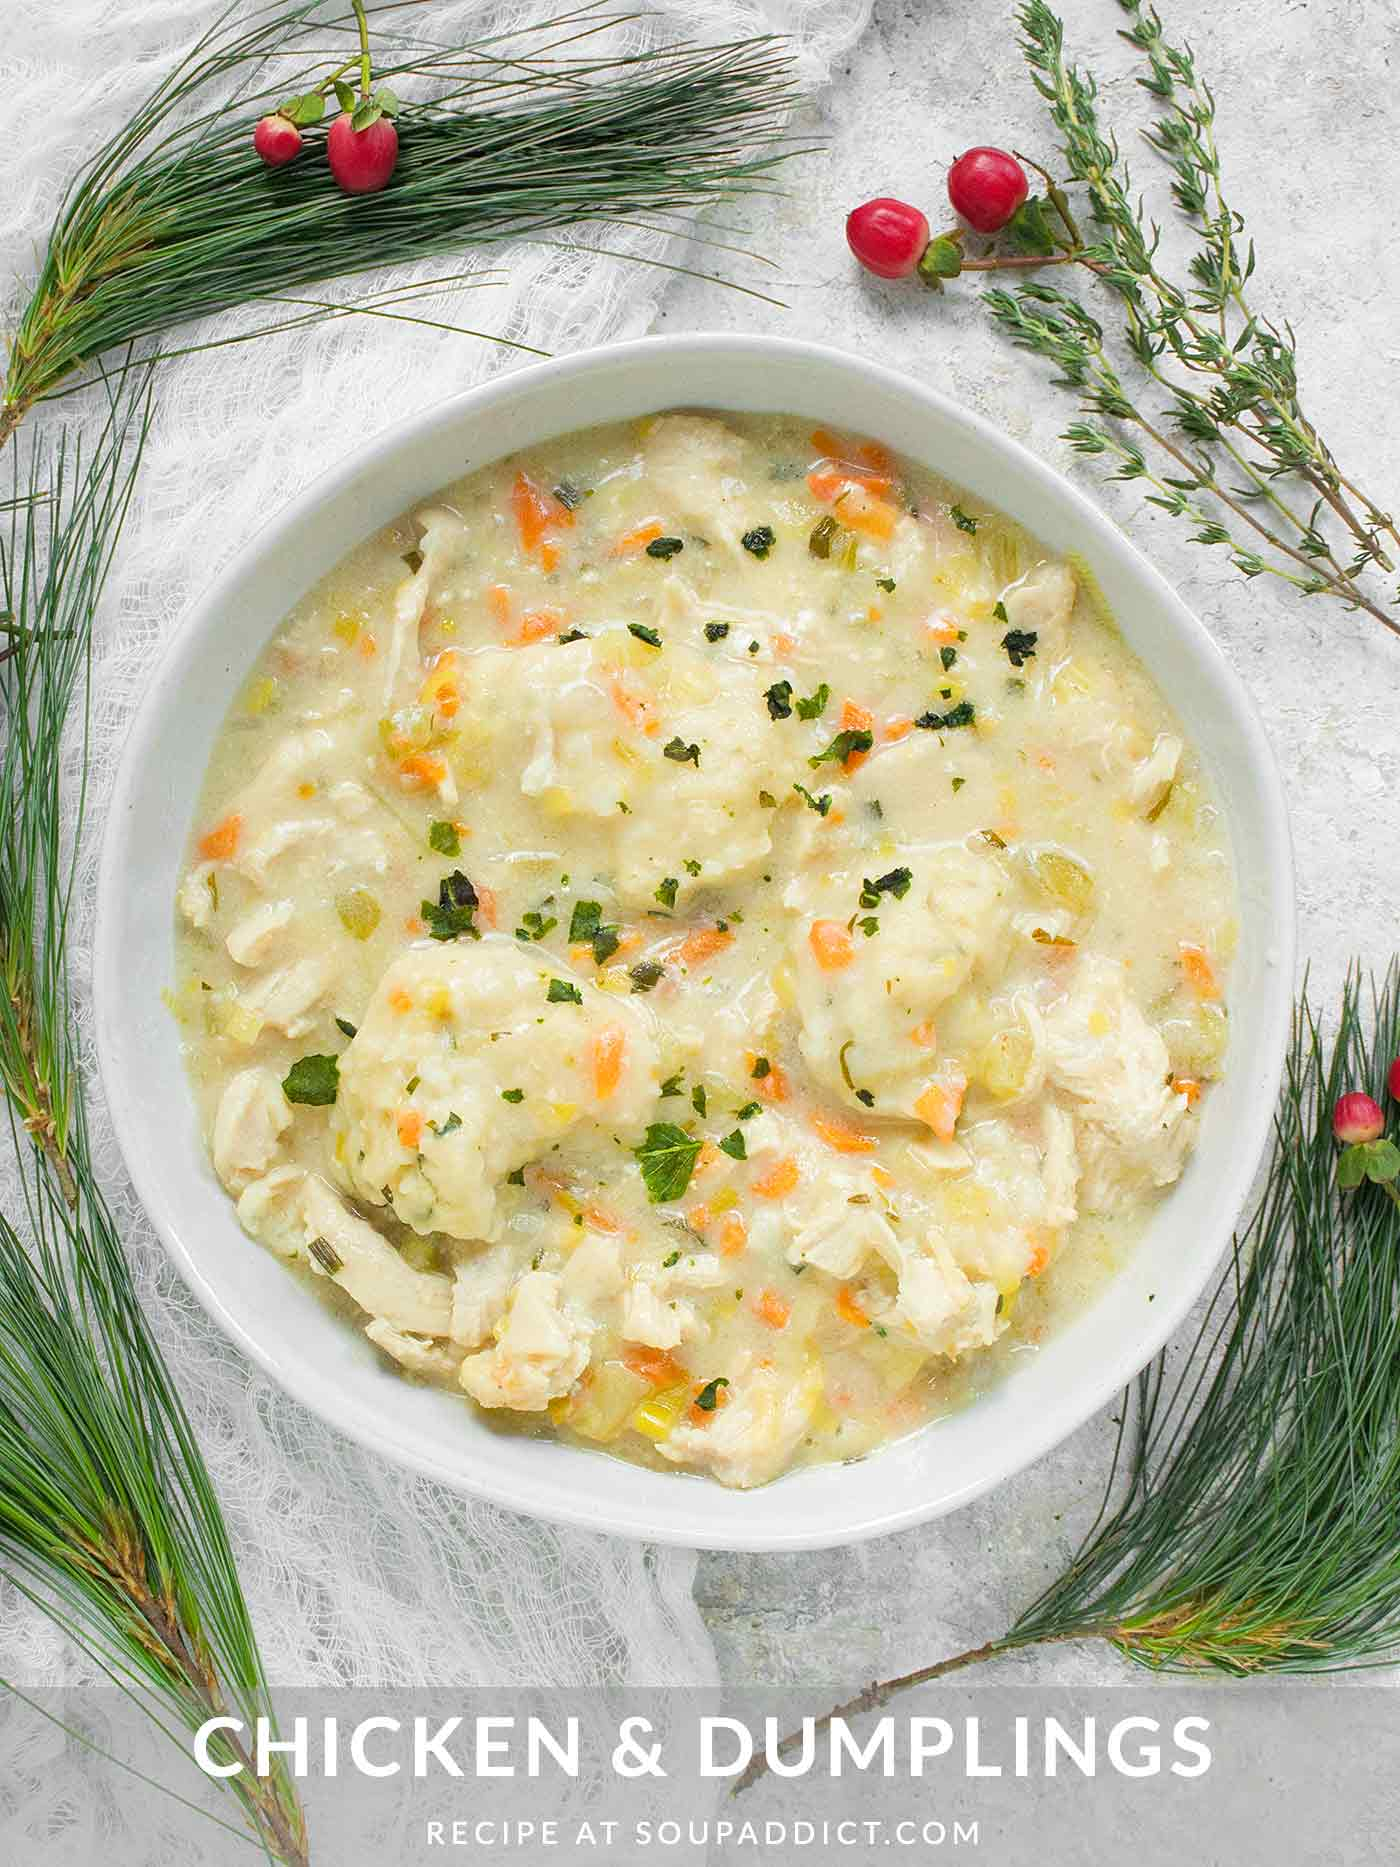 A bowl of Chicken and Dumplings